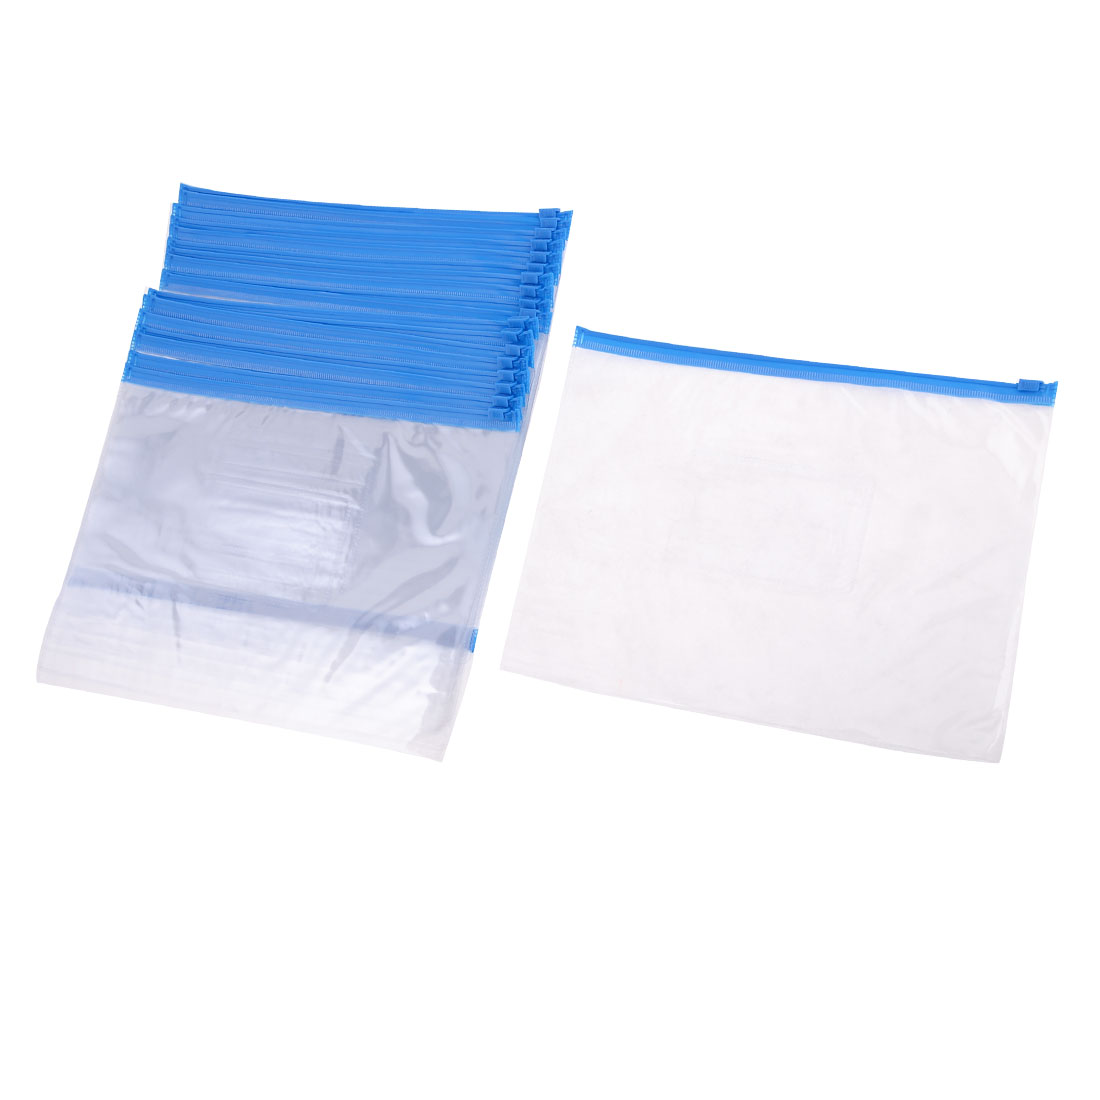 Office Blue Clear Size A5 Paper Slider Zip Closure Folders Files Bags 20 Pcs